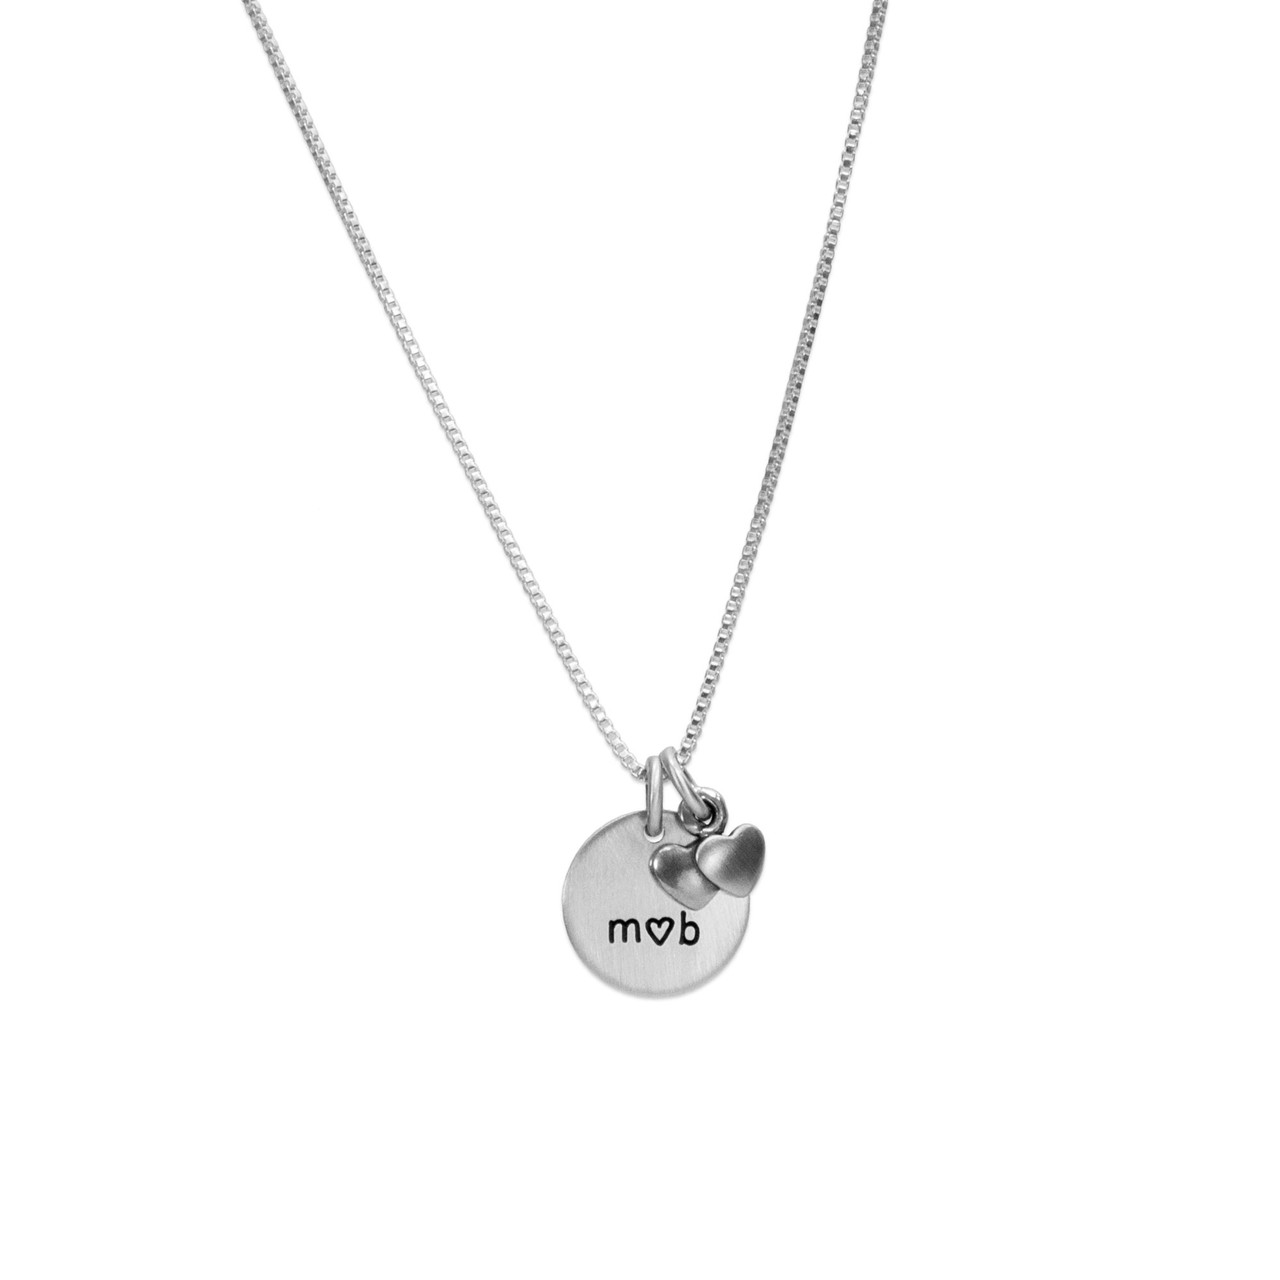 Silver hand stamped Me and You Necklace with initials, shown on white background